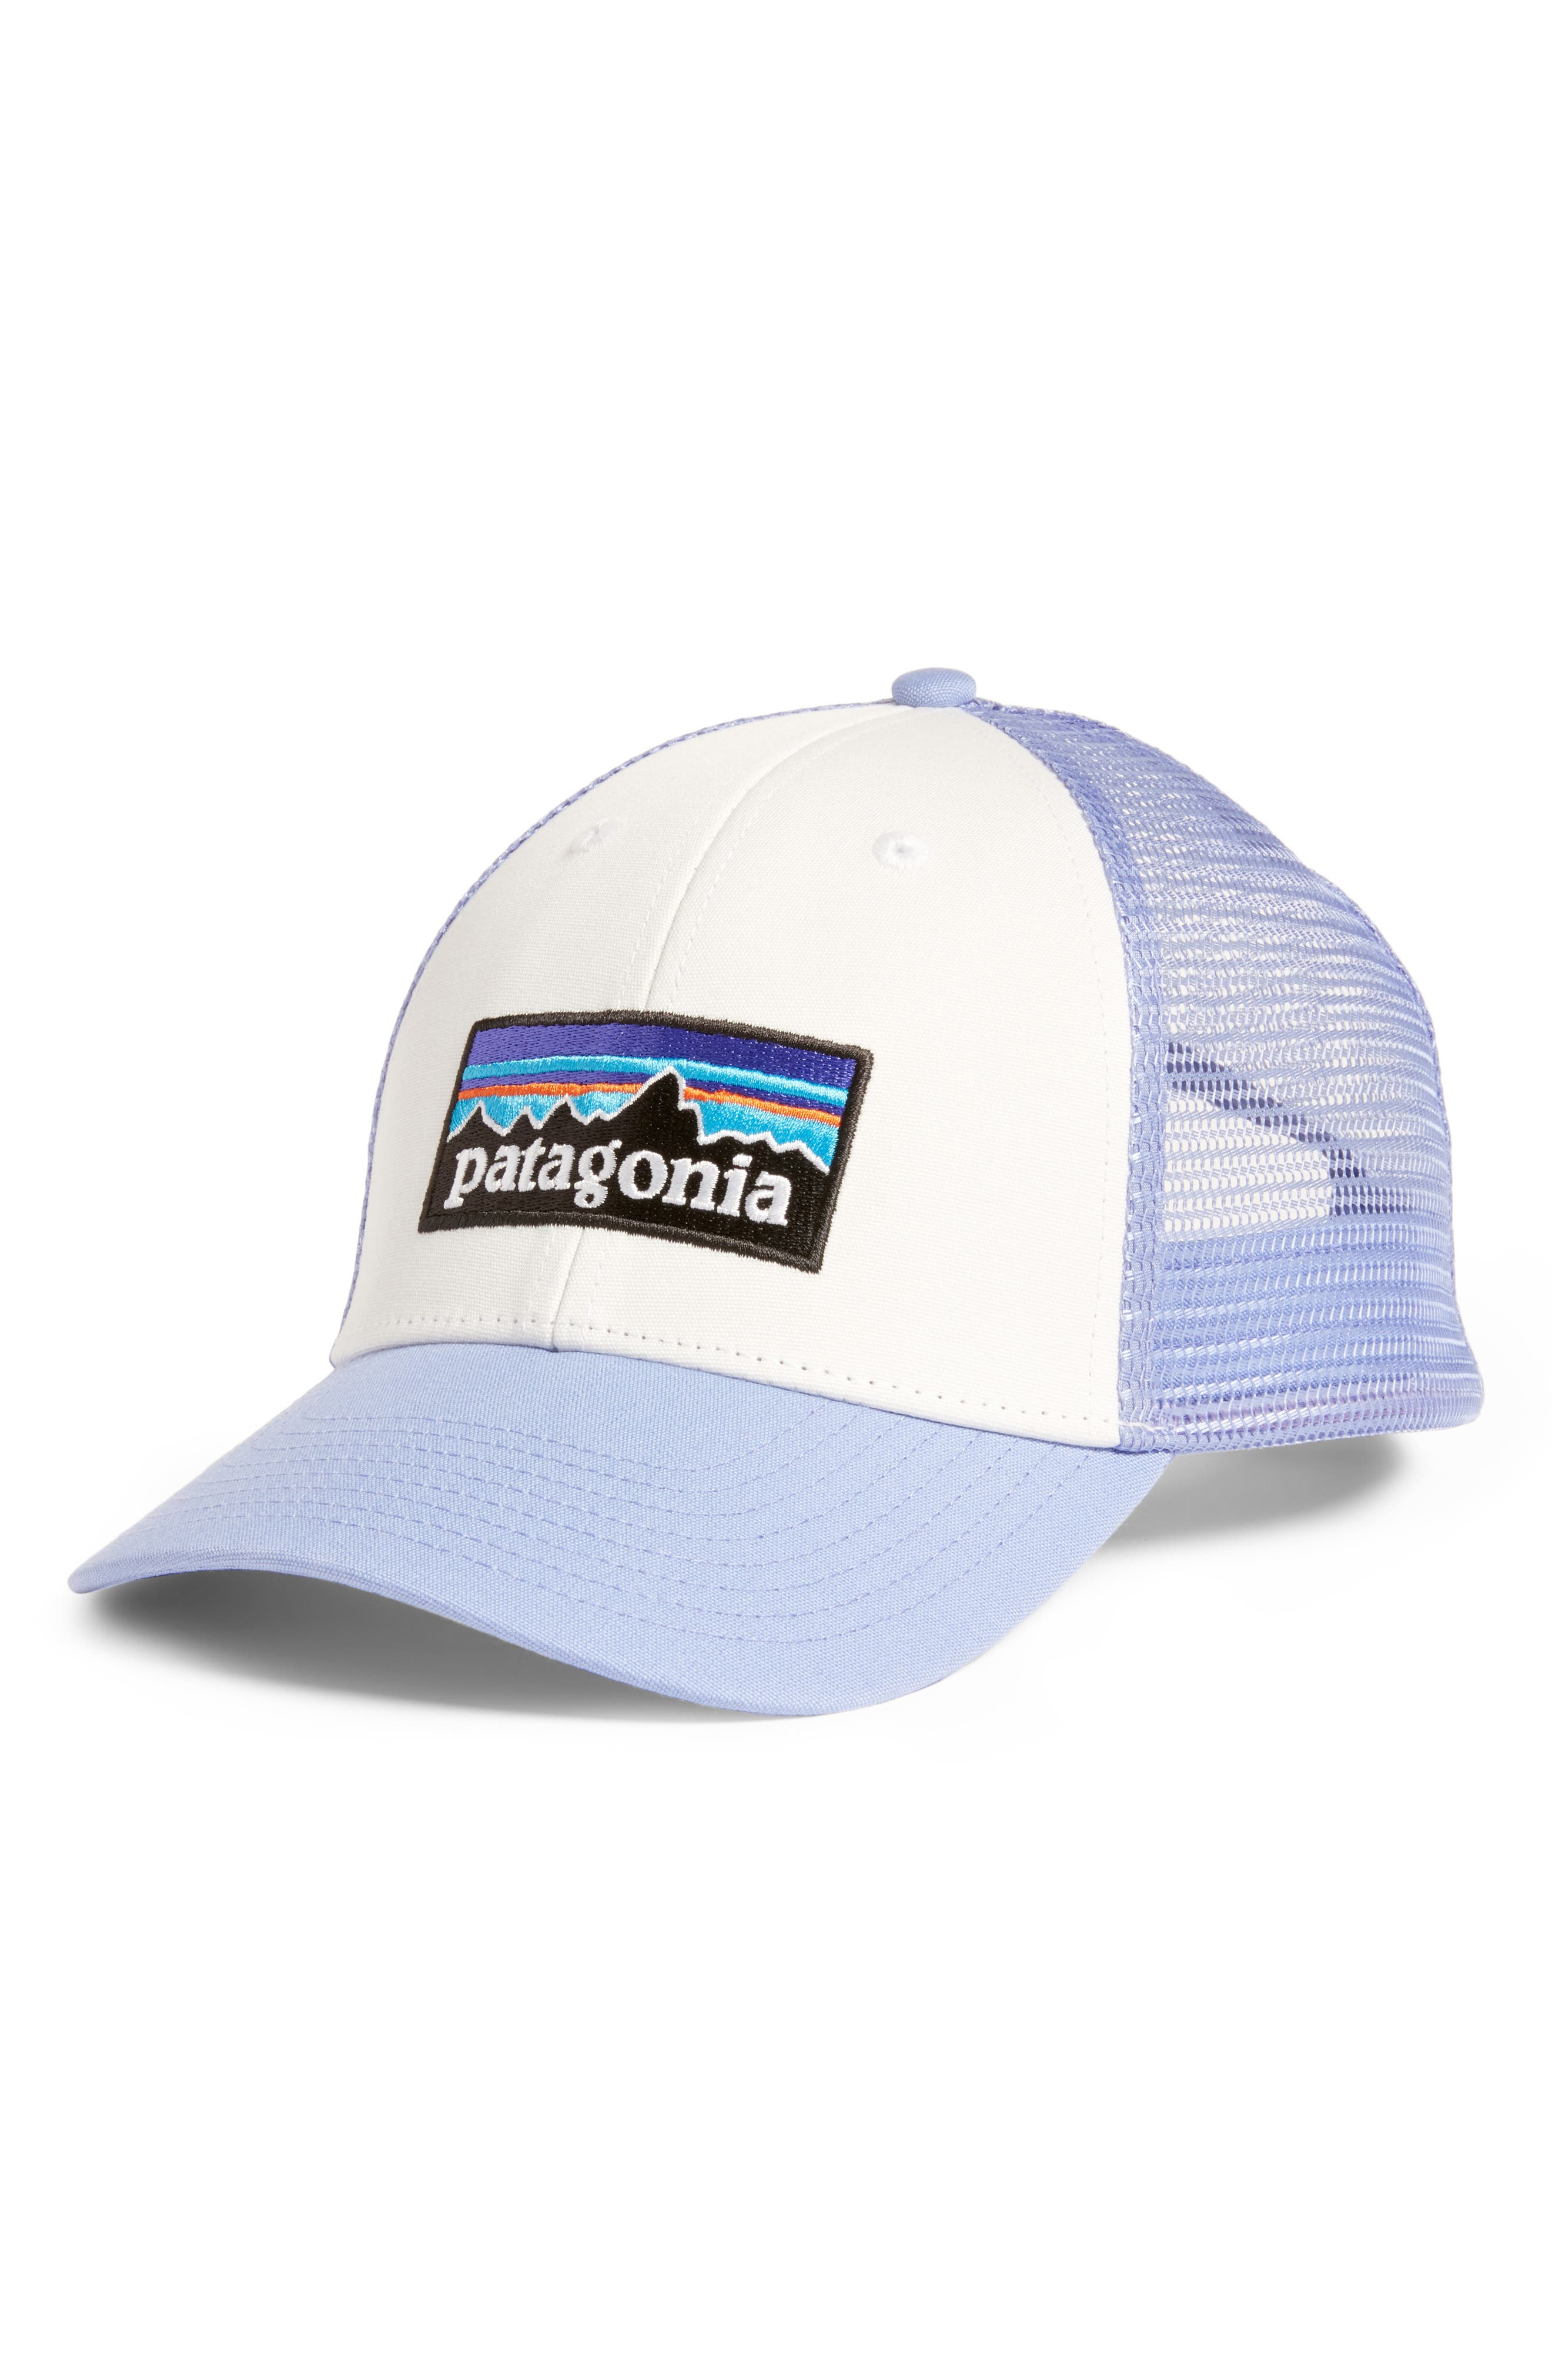 PATAGONIA, P6 LoPro Trucker Hat, Main thumbnail 1, color, WHITE W/ LIGHT VIOLET BLUE